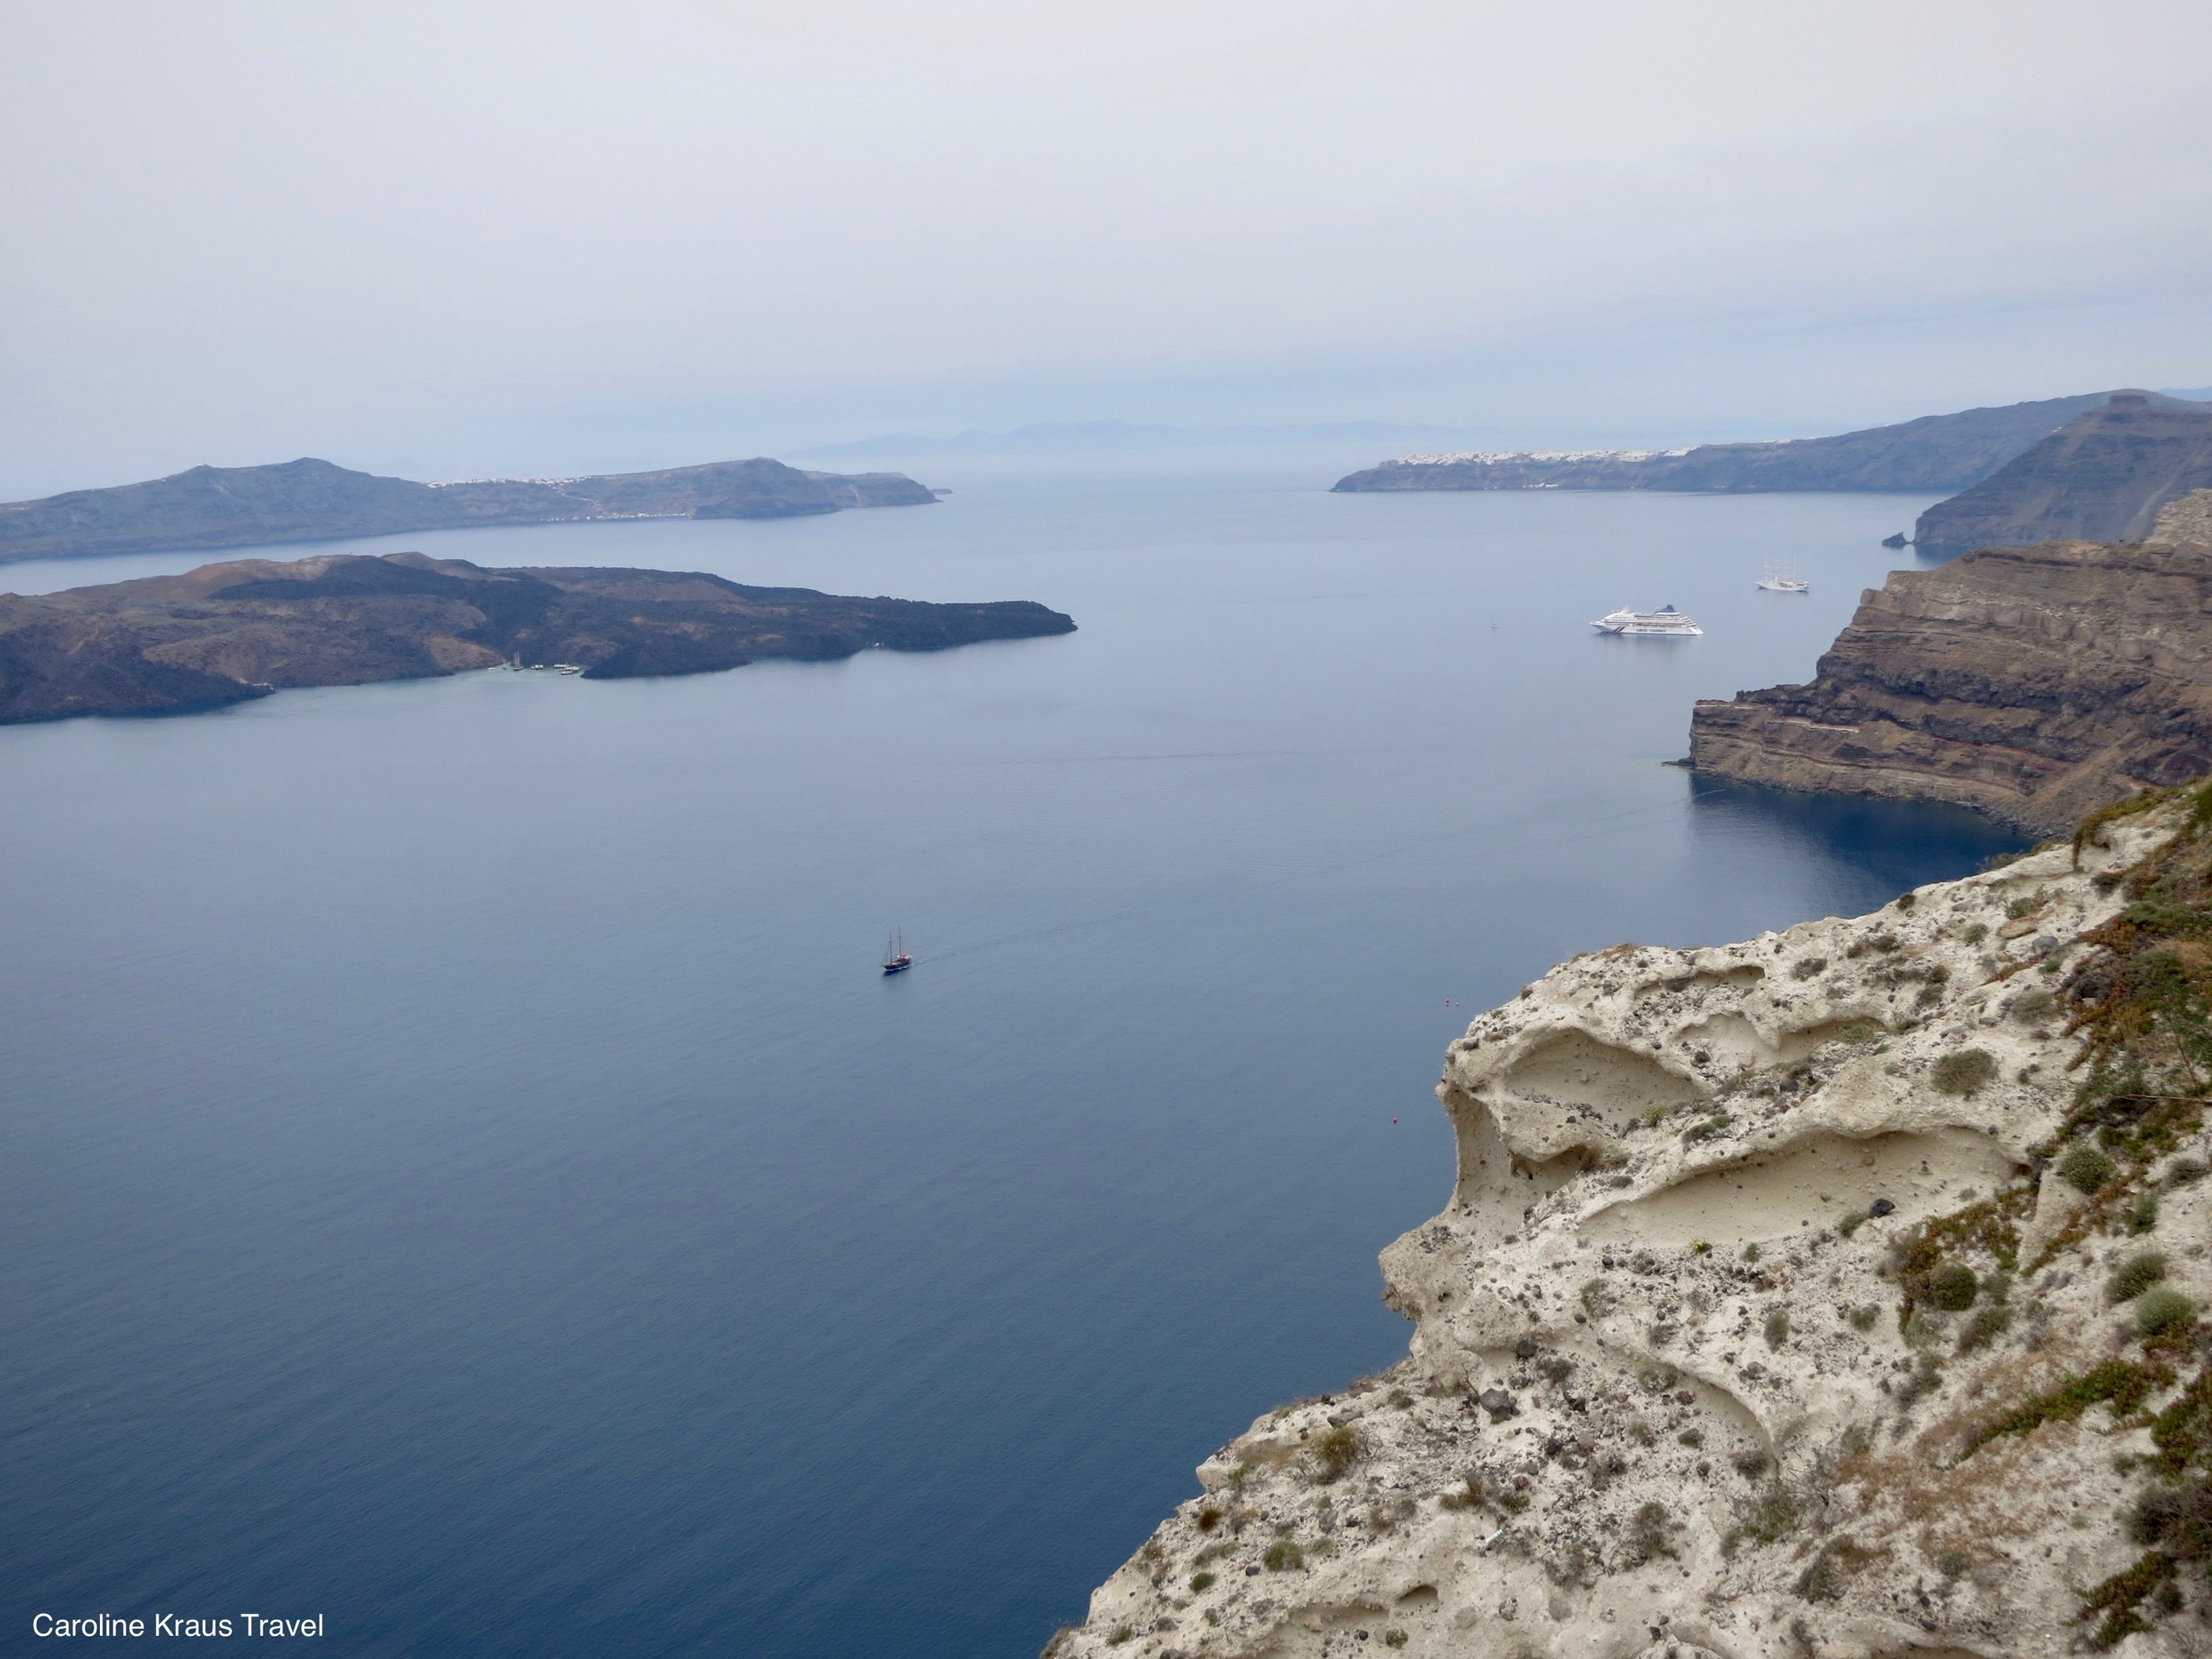 View from Santo Winery in Santorini, Greece